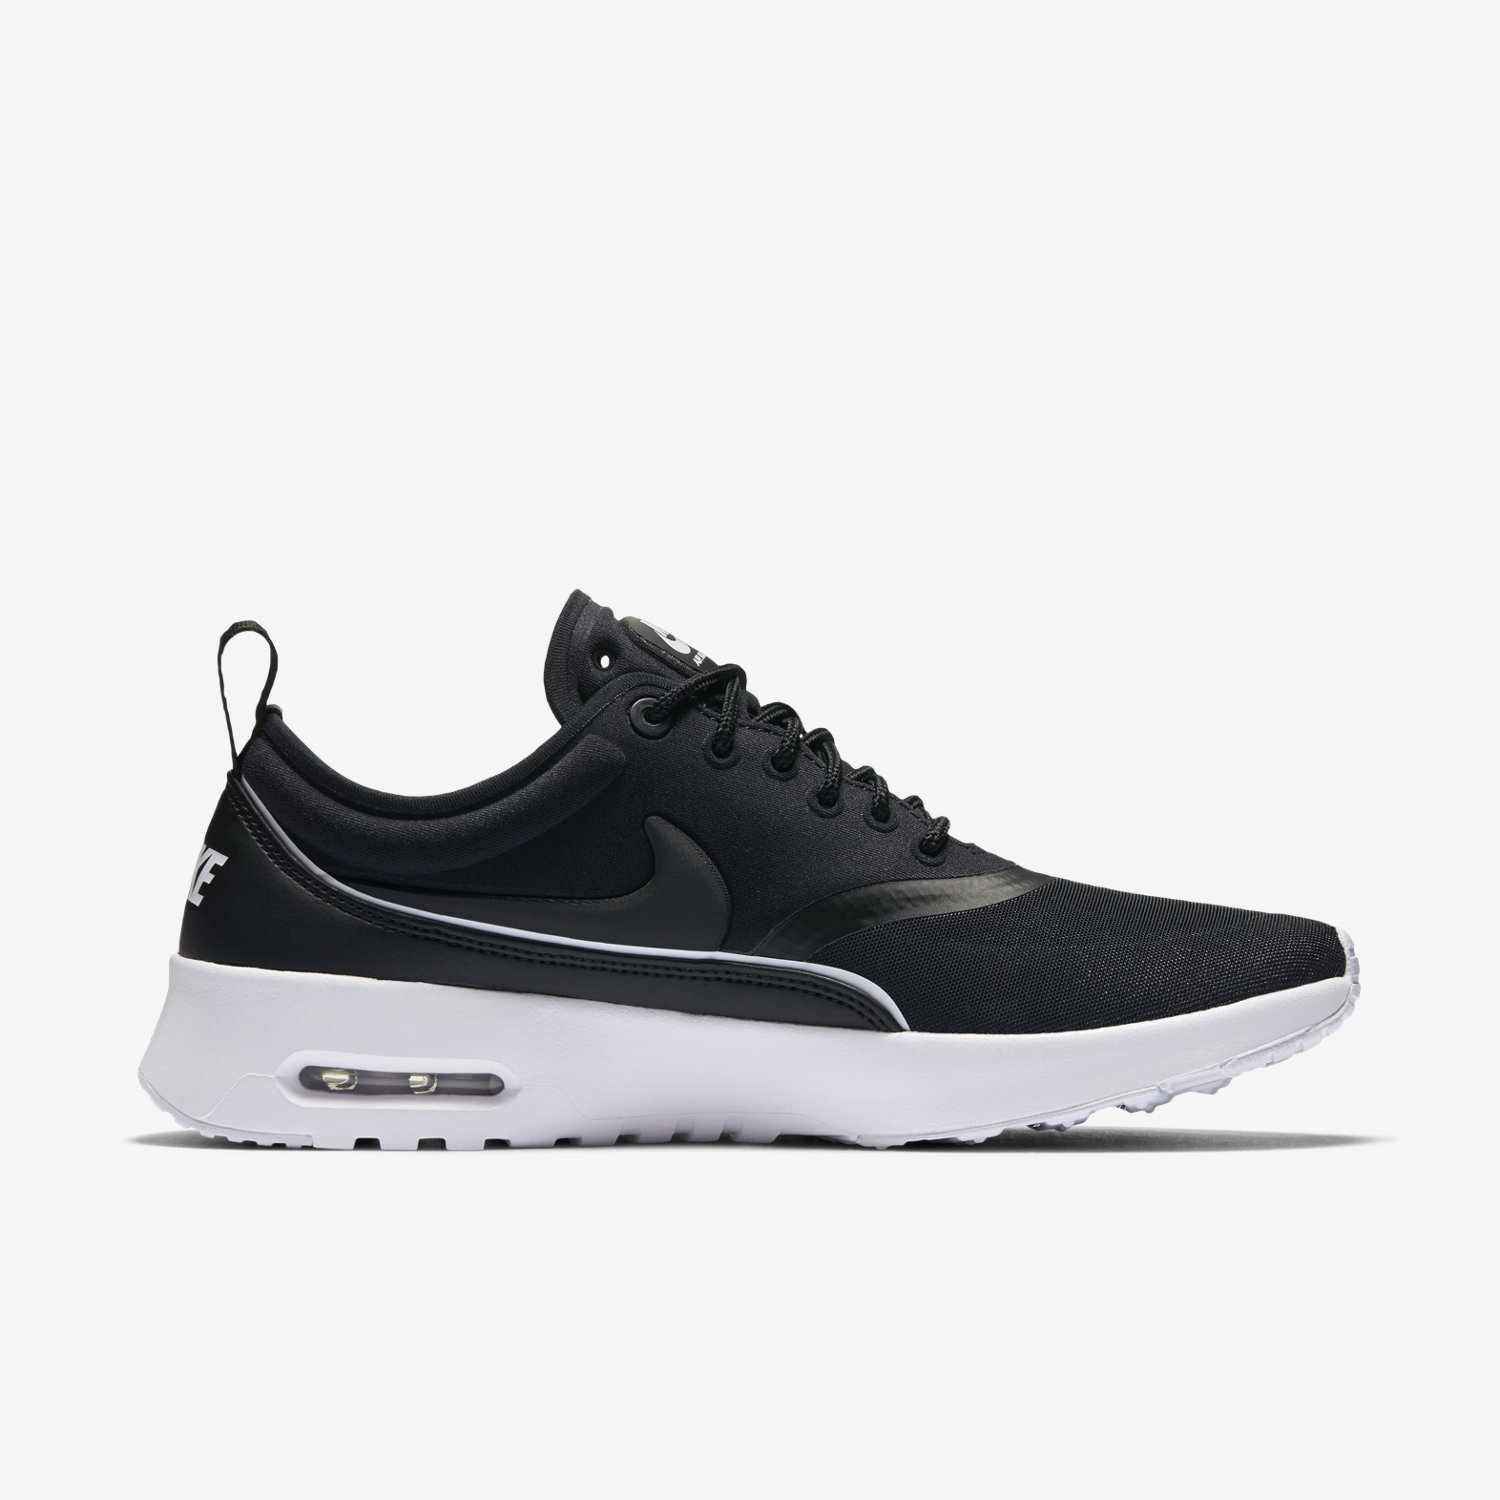 Nike Air Max Thea Size 9 Worldwide Friends Veraldarvinir